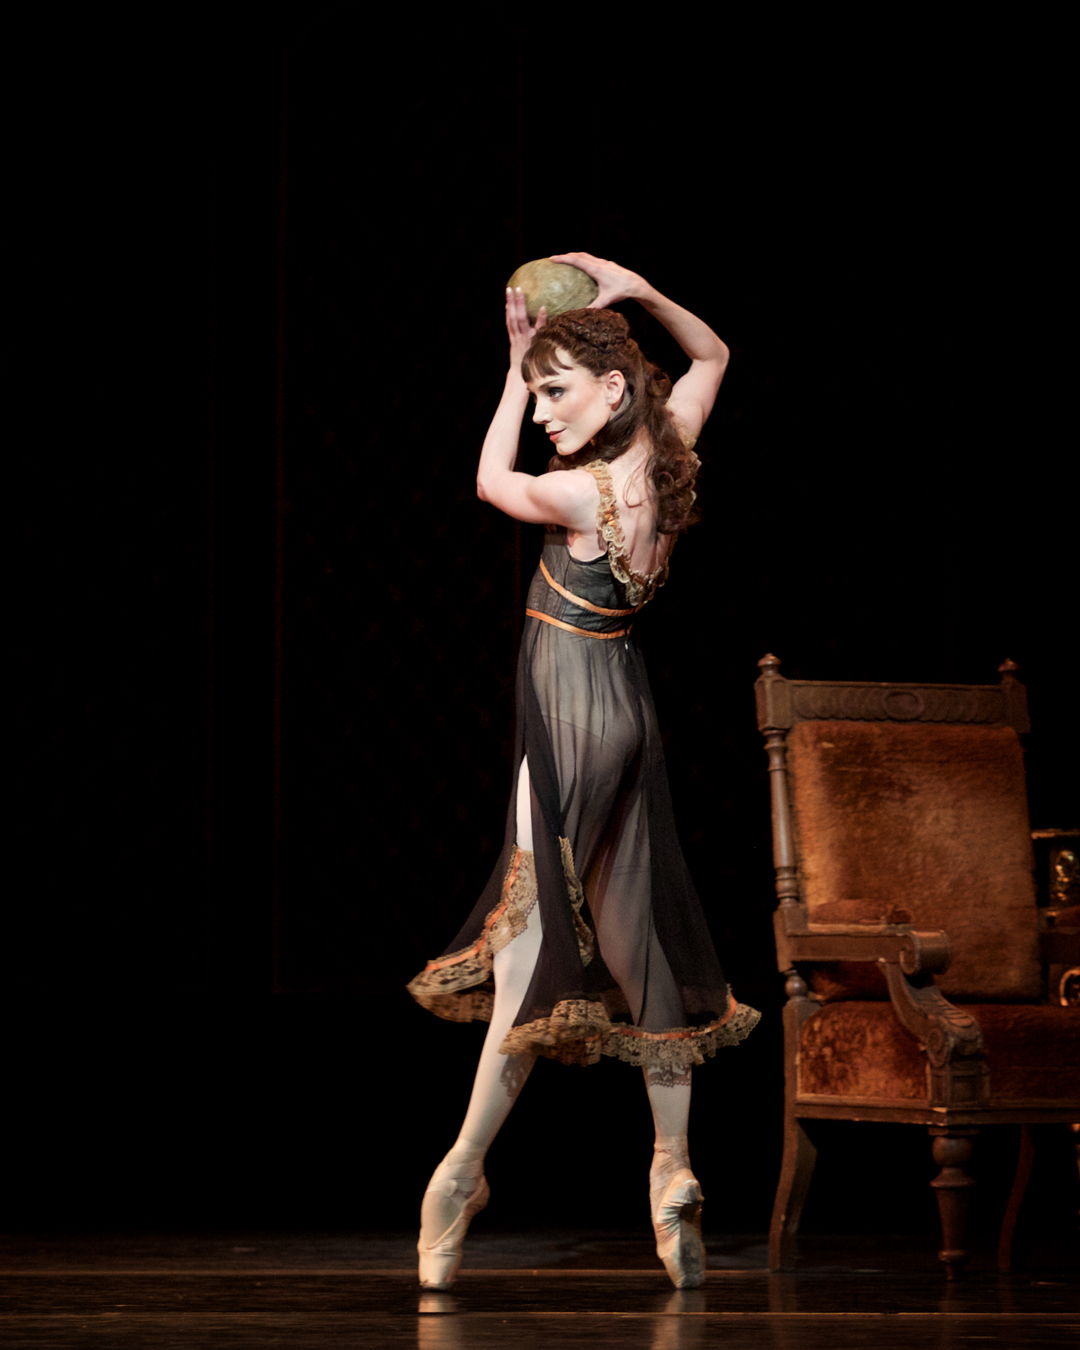 mayerling-sarah-lamb-as-mary-vetsera-c-roh-2017-photographed-by-alice-pennefather